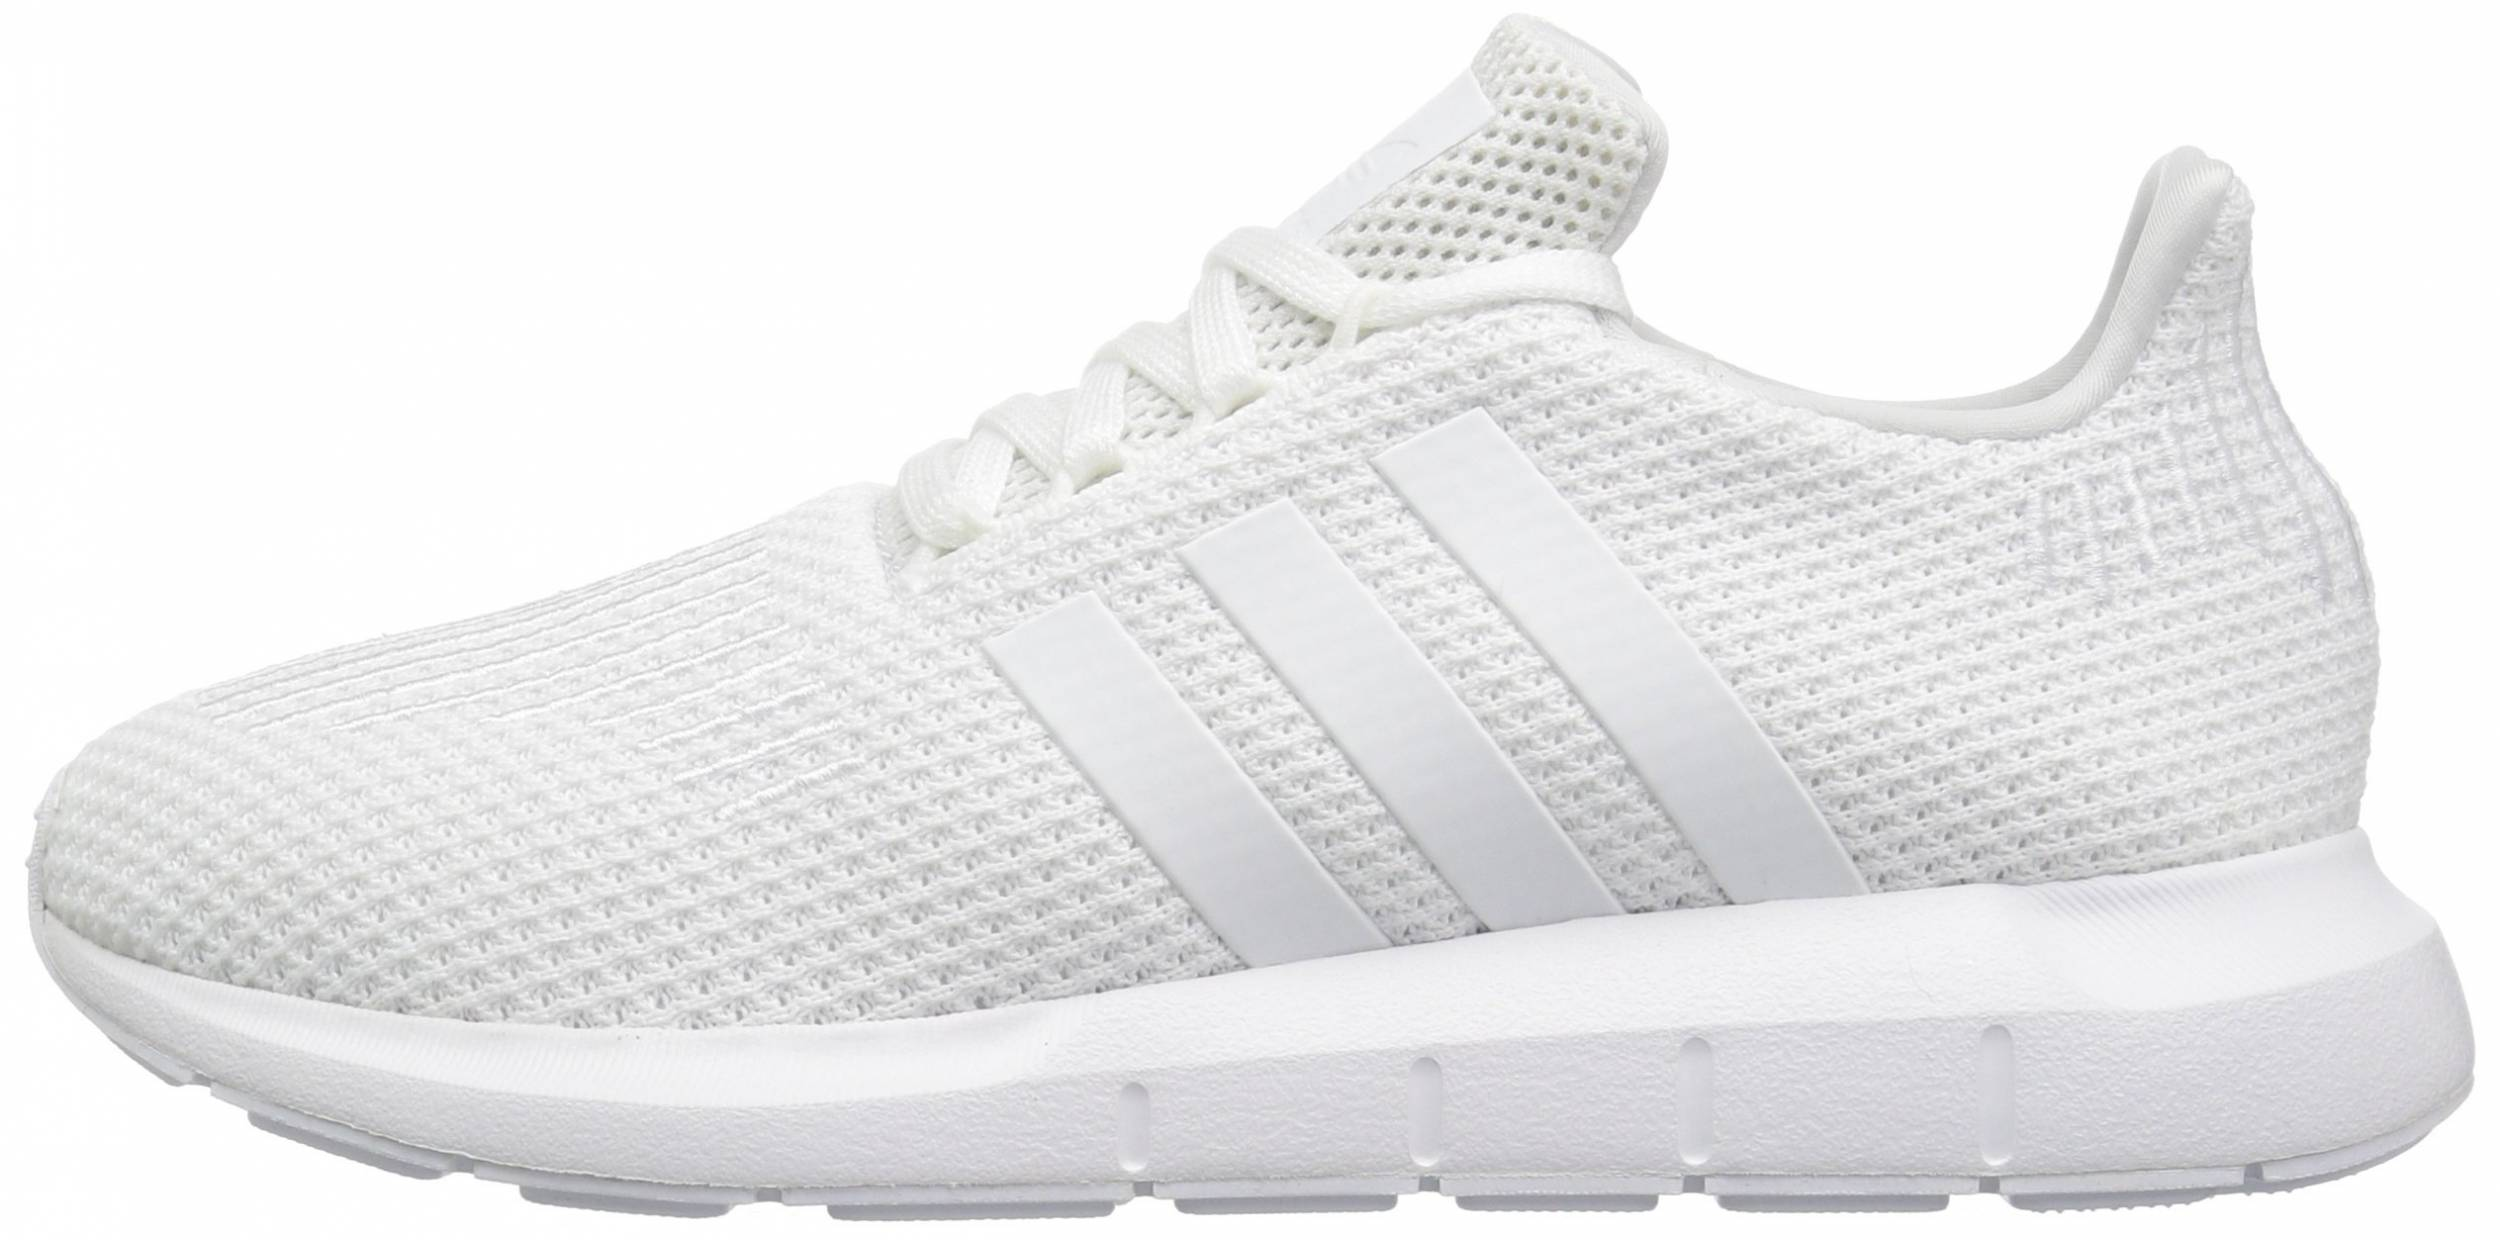 Only $43 + Review of Adidas Swift Run